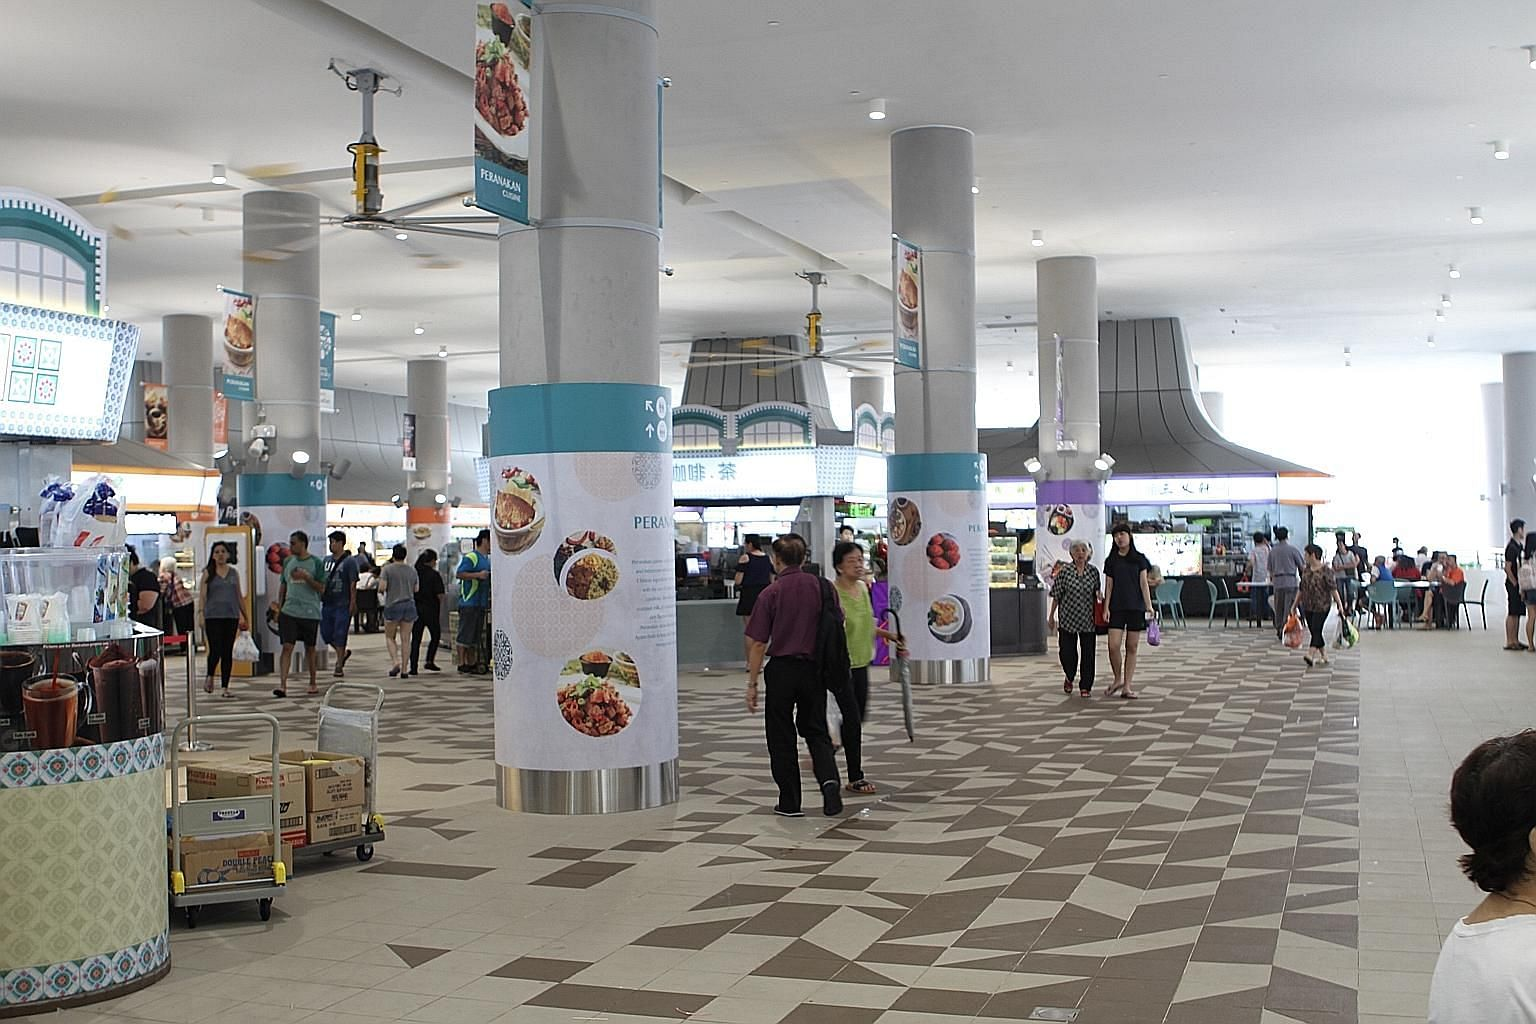 The food centre at Kampung Admiralty, a development that has been held up as an example of what the Government is doing to transform education, healthcare and housing to improve lives. The writer says smart use of data can foster a spirit of together